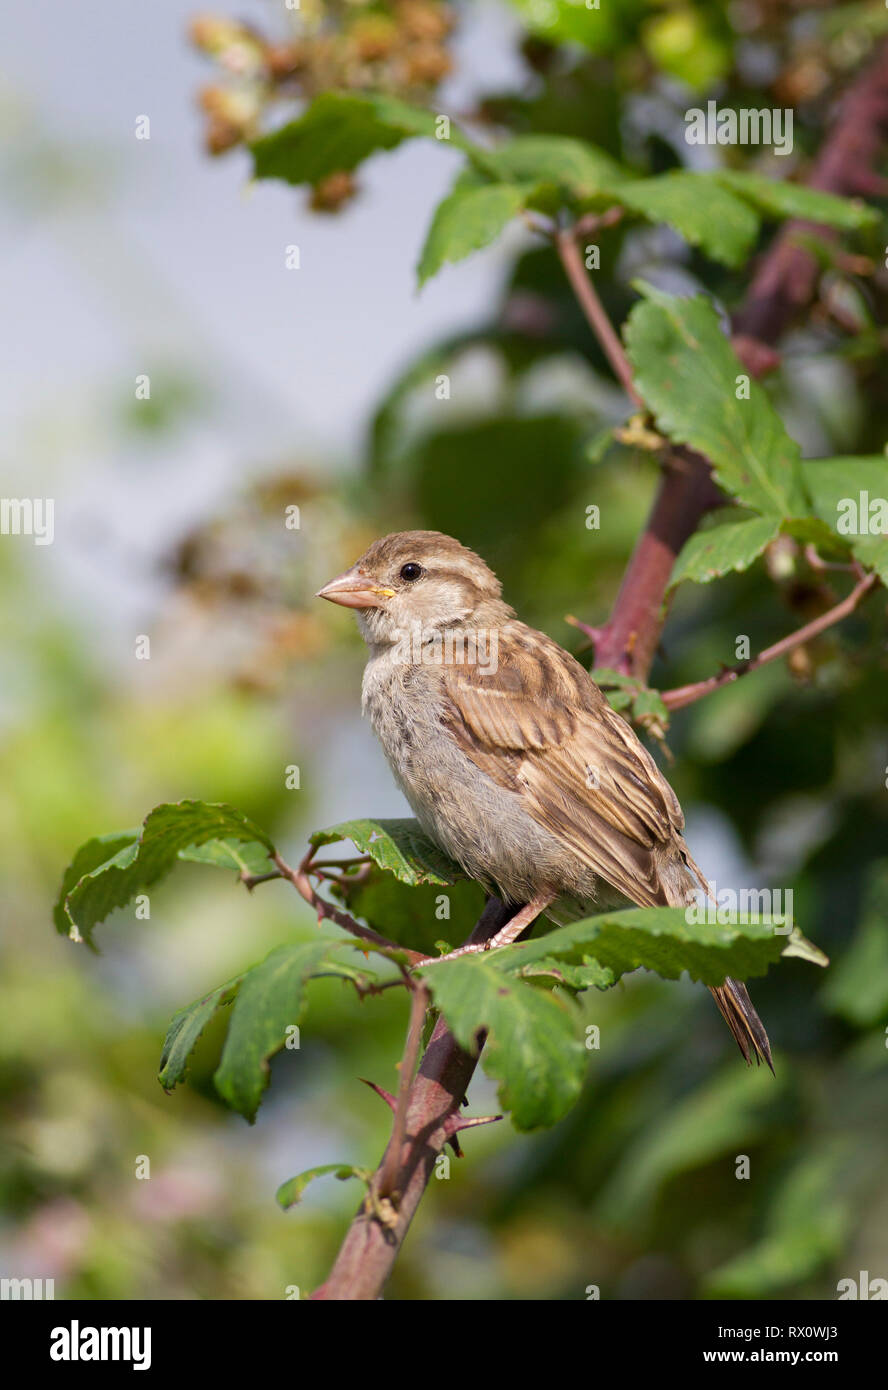 House Sparrow, Passer domesticus,  Single adult female perched on bramble branch. Worcestershire, UK. - Stock Image